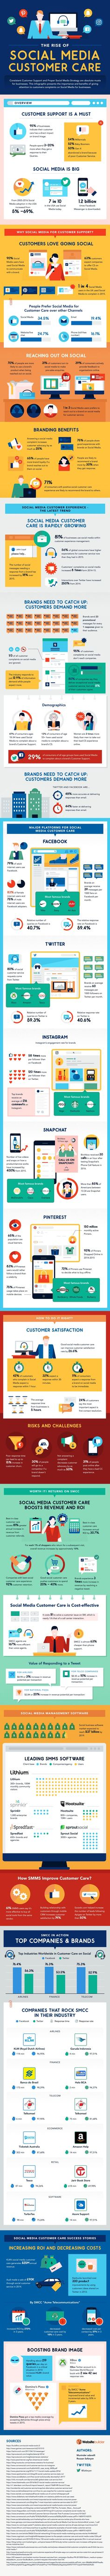 The Rise of Social Media Customer Care - #infographic